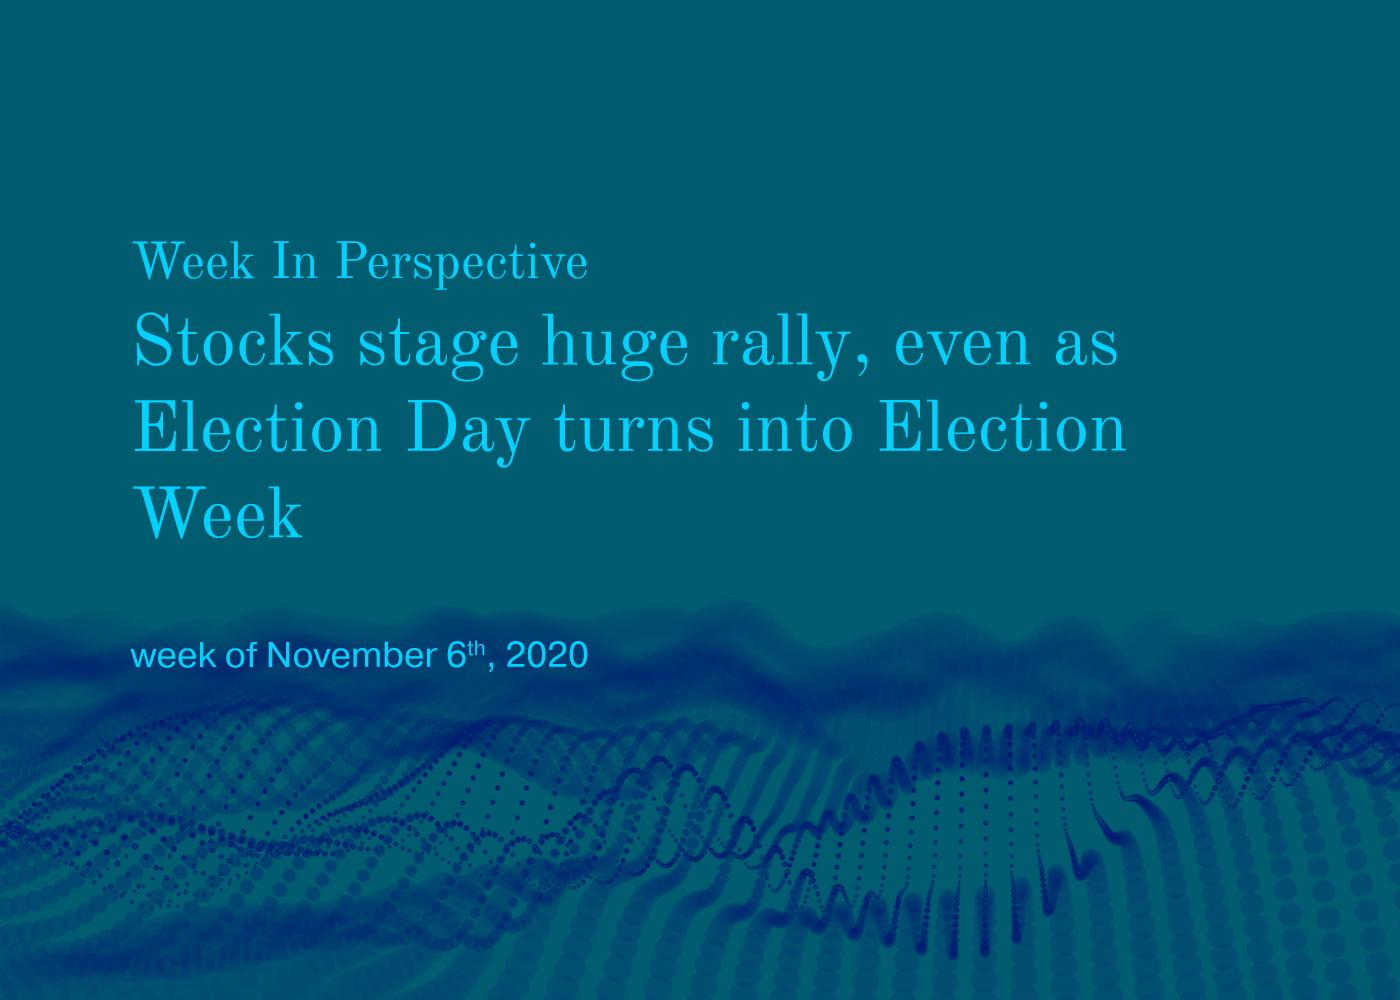 Week In Perspective November 6, 2020:  Stocks Stage Huge Really Thumbnail